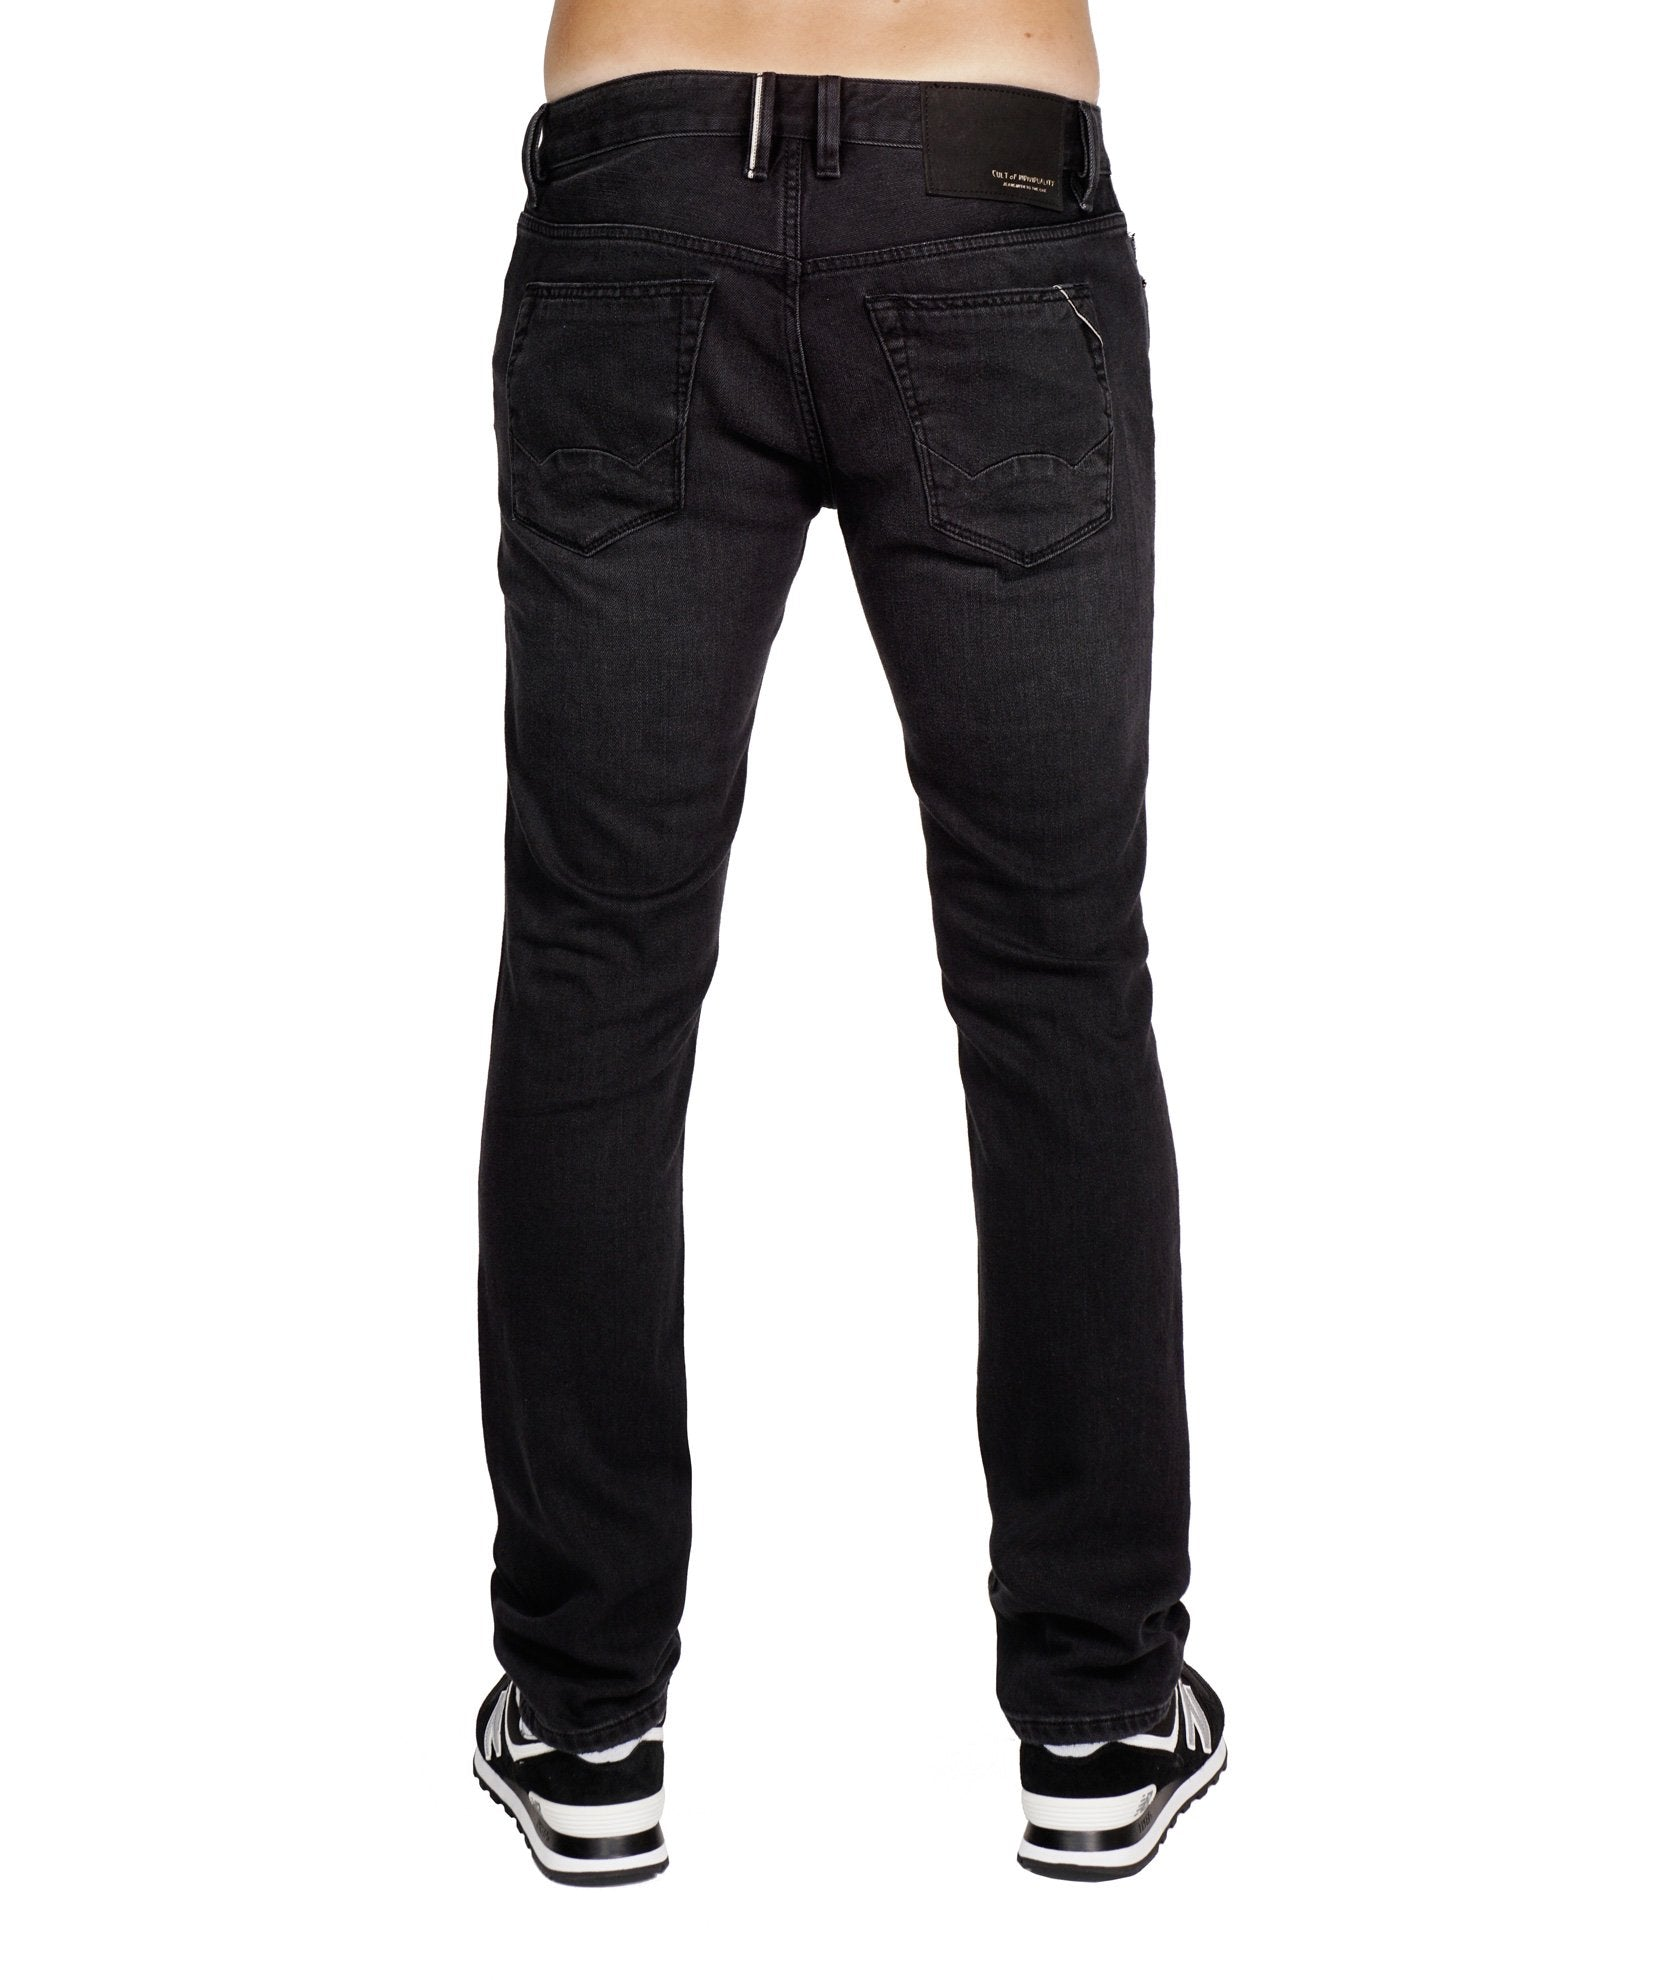 Men's Rocker Slim Denim Jeans Premium Stretch in Vintage Black